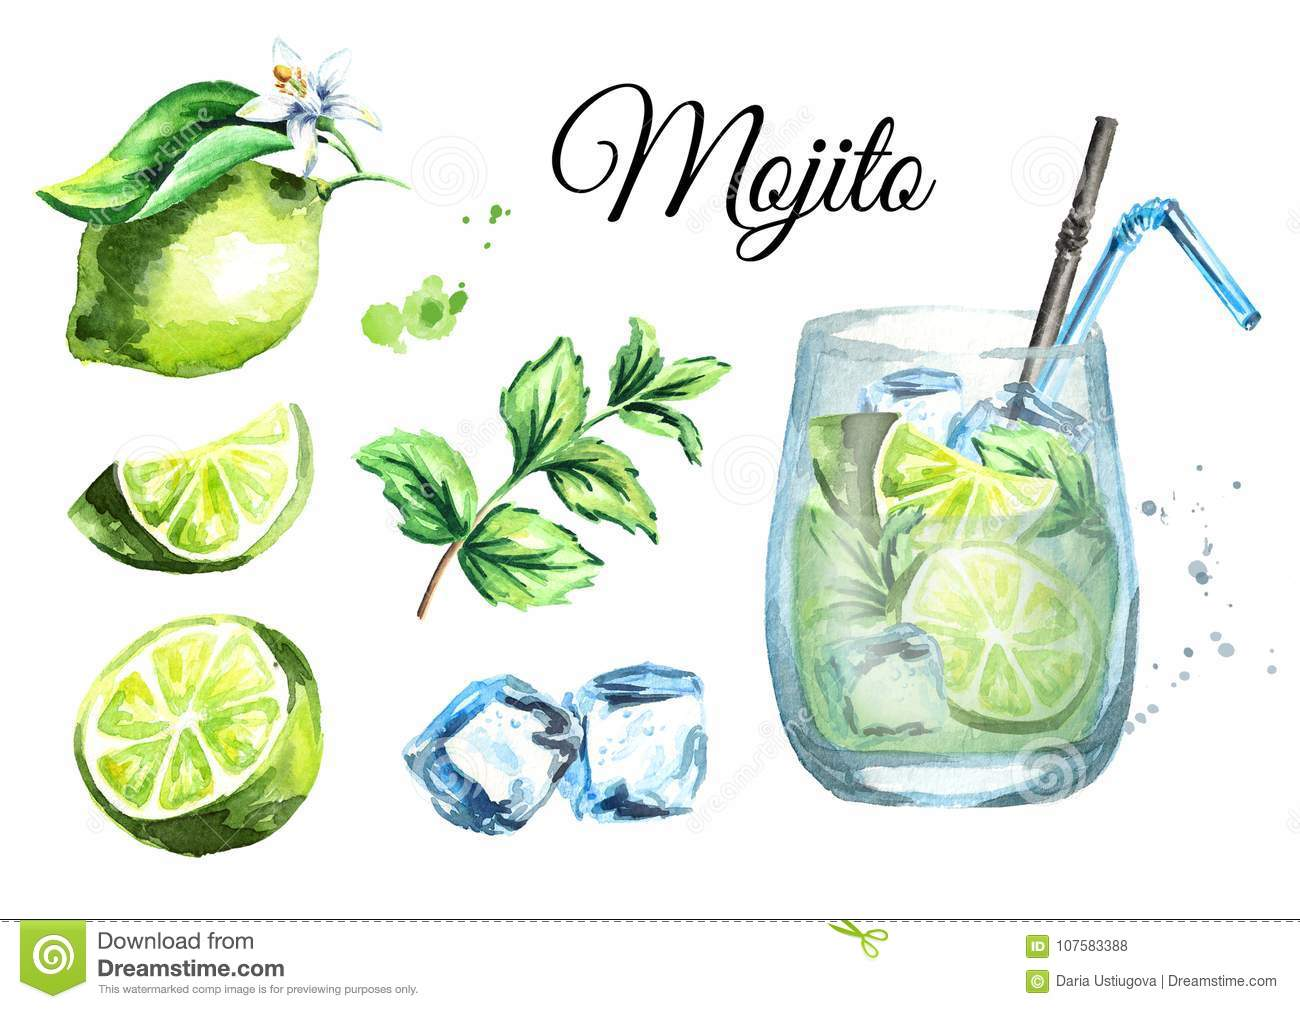 Mojito set with Glass, ice cubes, lime and mint. Watercolor hand drawn illustration.